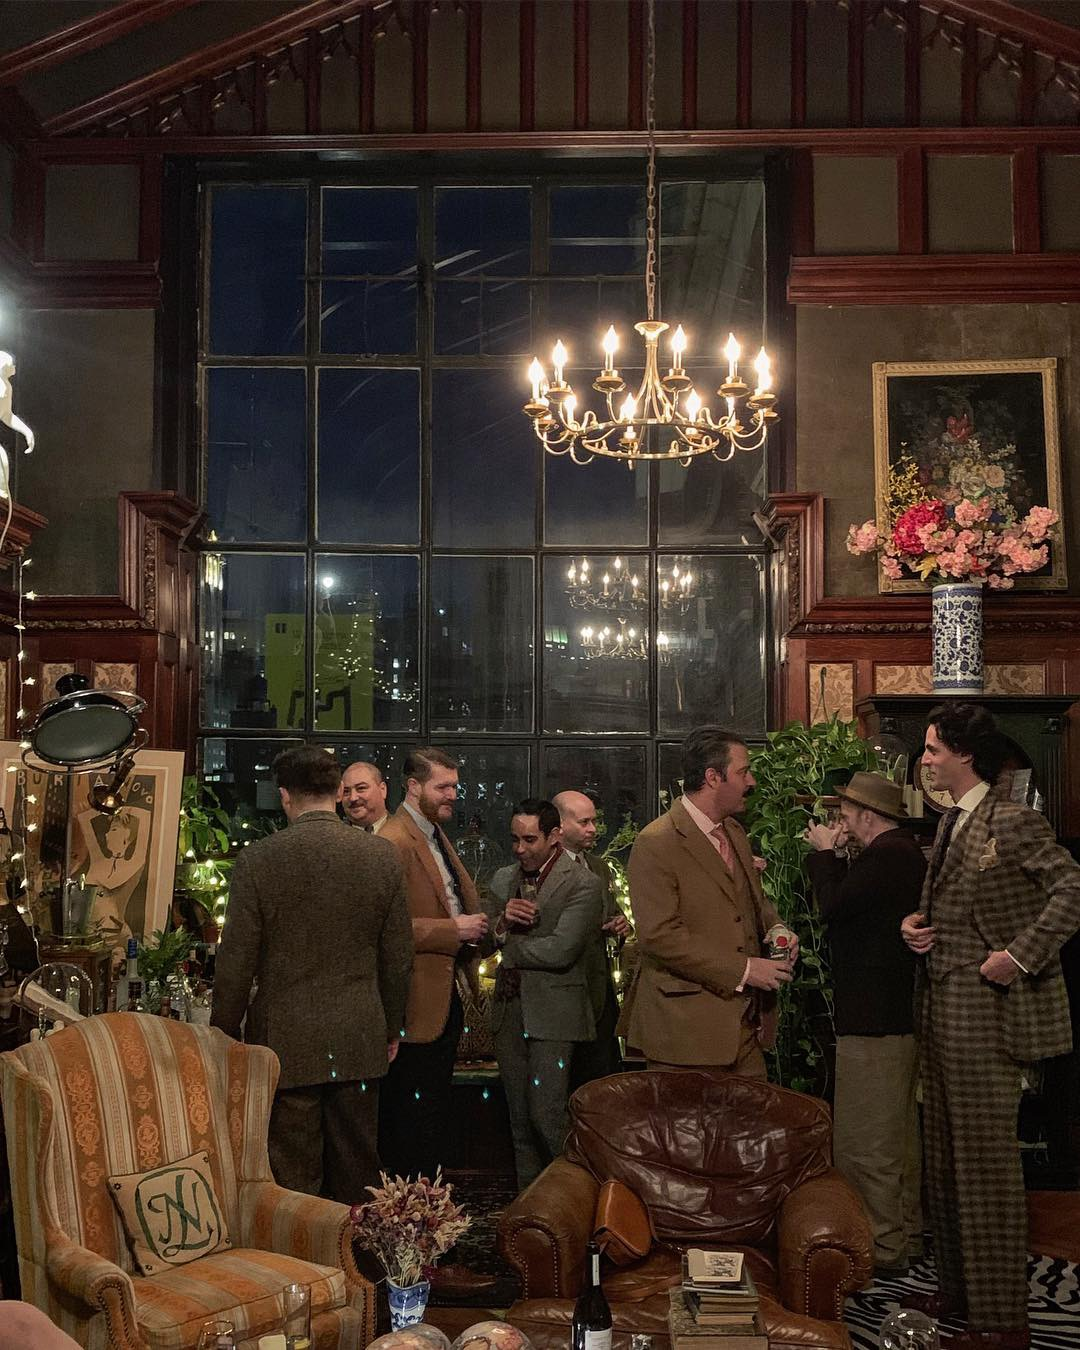 """The Tweed Talk afterparty, generously hosted by National Arts Club member and resident Nicholas Lowry. From Left to right, Andrew, Flusser clients Kelly Bray and Sean Crowley, Ralph Lauren's Basha Singh, Flusser client Don Spiro, Nicholas Lowry, unknown guest, and Flusser client Will Burghes in his Flusser MTM """"Dashing Tweeds"""" suit. (Photo by Rose Callahan)"""